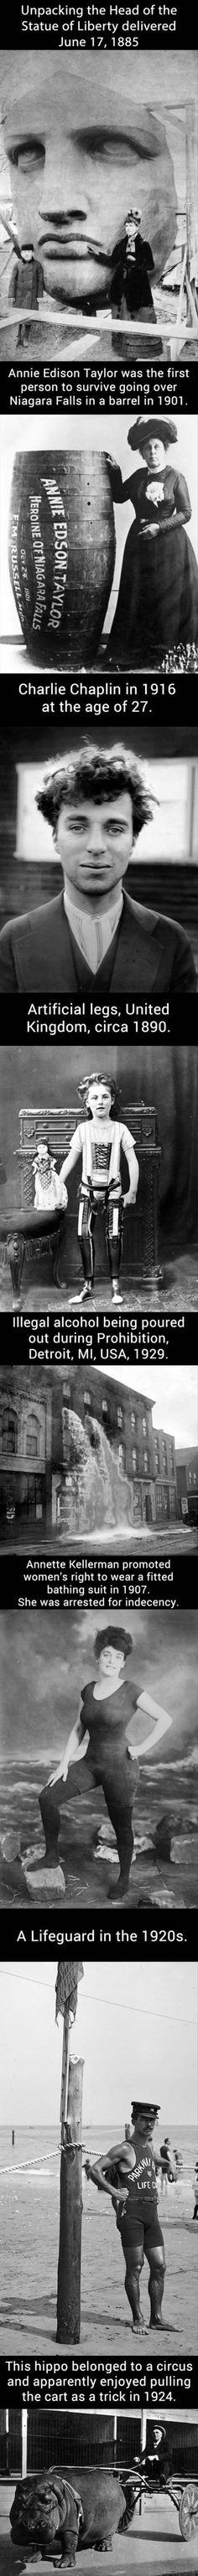 Photos from the past // funny pictures - funny photos - funny images - funny pics - funny quotes - Old Pictures, Old Photos, Vintage Photos, Images Photos, Funny Photos, Funny Images, Epic Photos, Amazing Photos, Interesting History